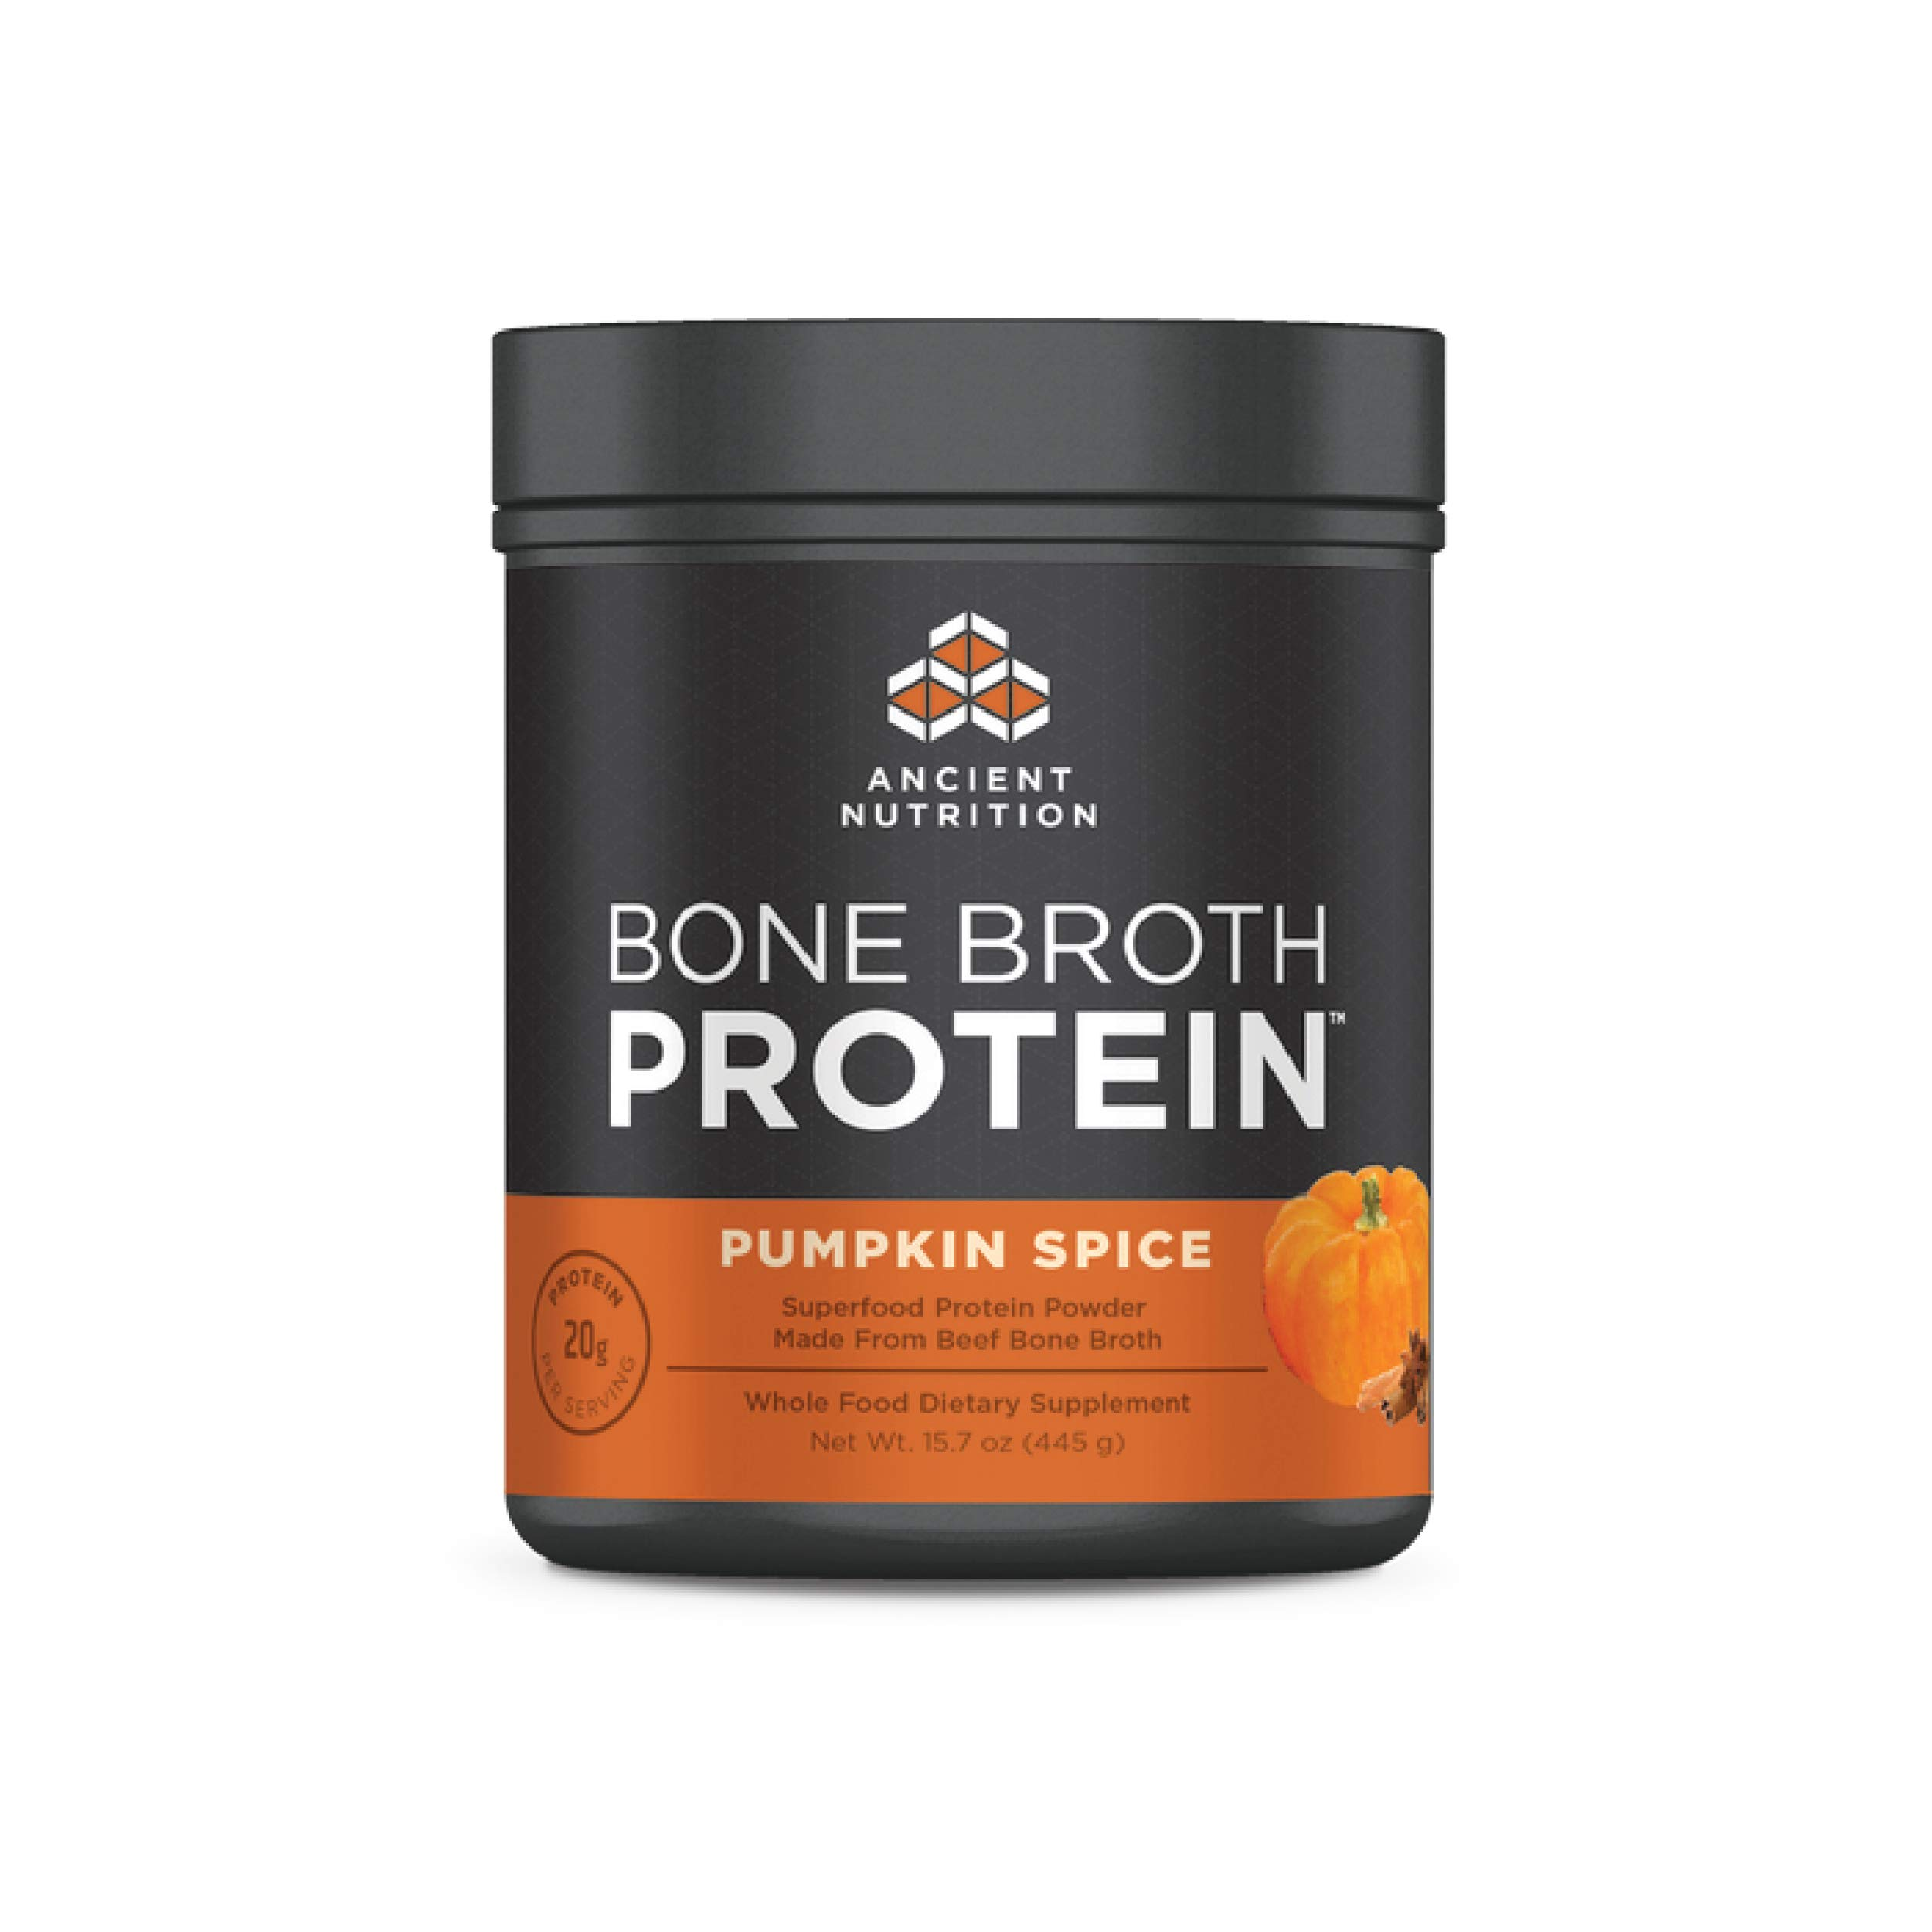 Ancient Nutrition Bone Broth Protein Powder, Pumpkin Spice Flavor, Made Without Dairy, Gluten or Soy, 20 Servings